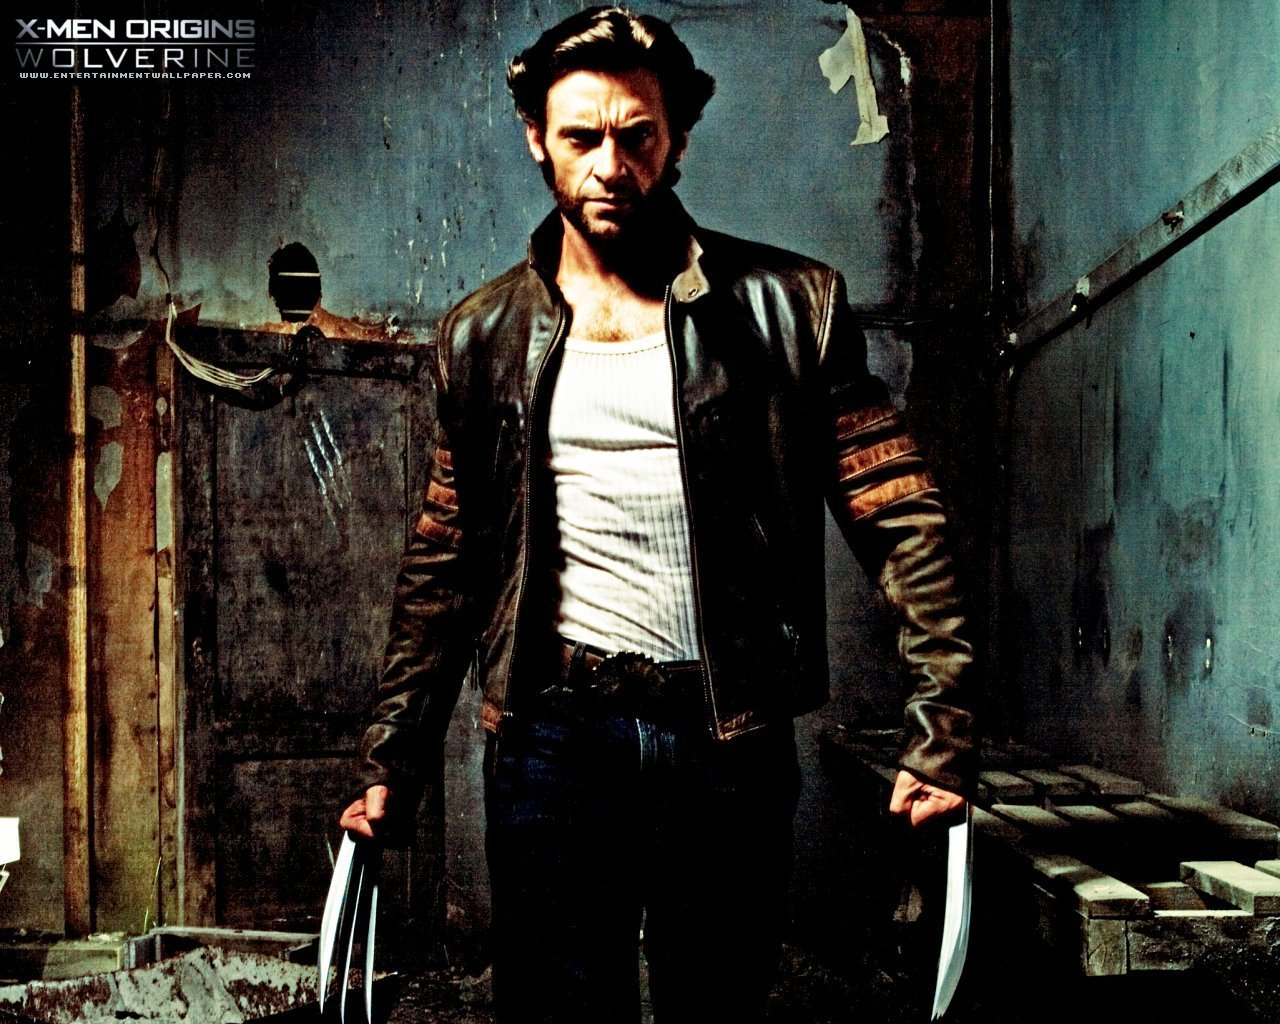 X-Men Origins: Wolverine Wallpaper - Upcoming Movies 1280x1024